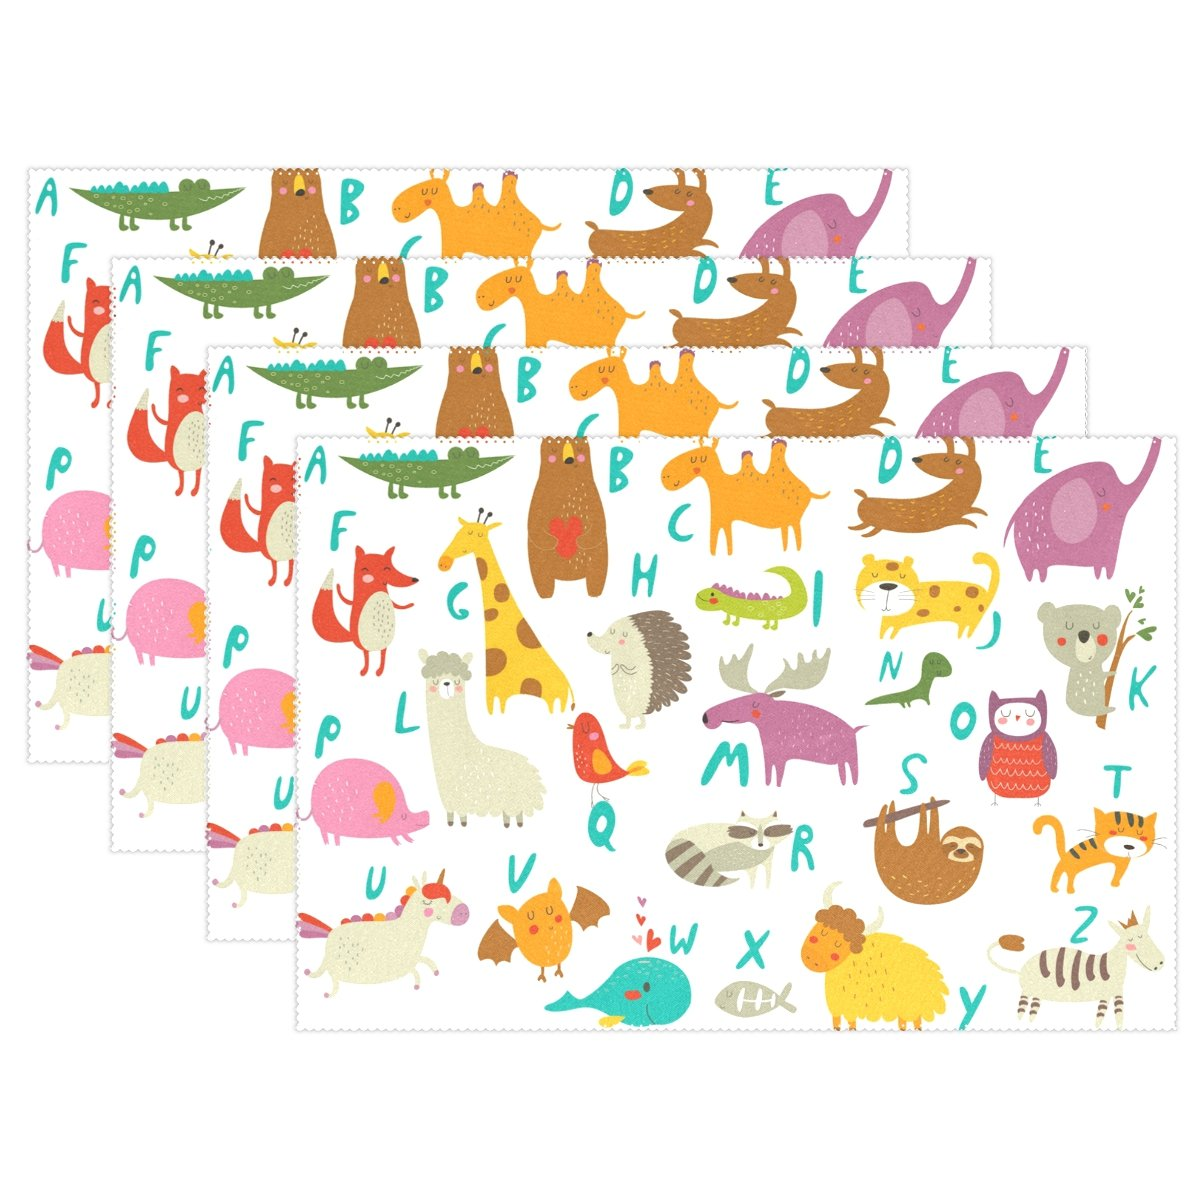 Top Carpenter ABC Alphabet With Cute Animals Place Mats Washable Heat Resistant Polyester Table Mats 12'' x 18'', Set of 4